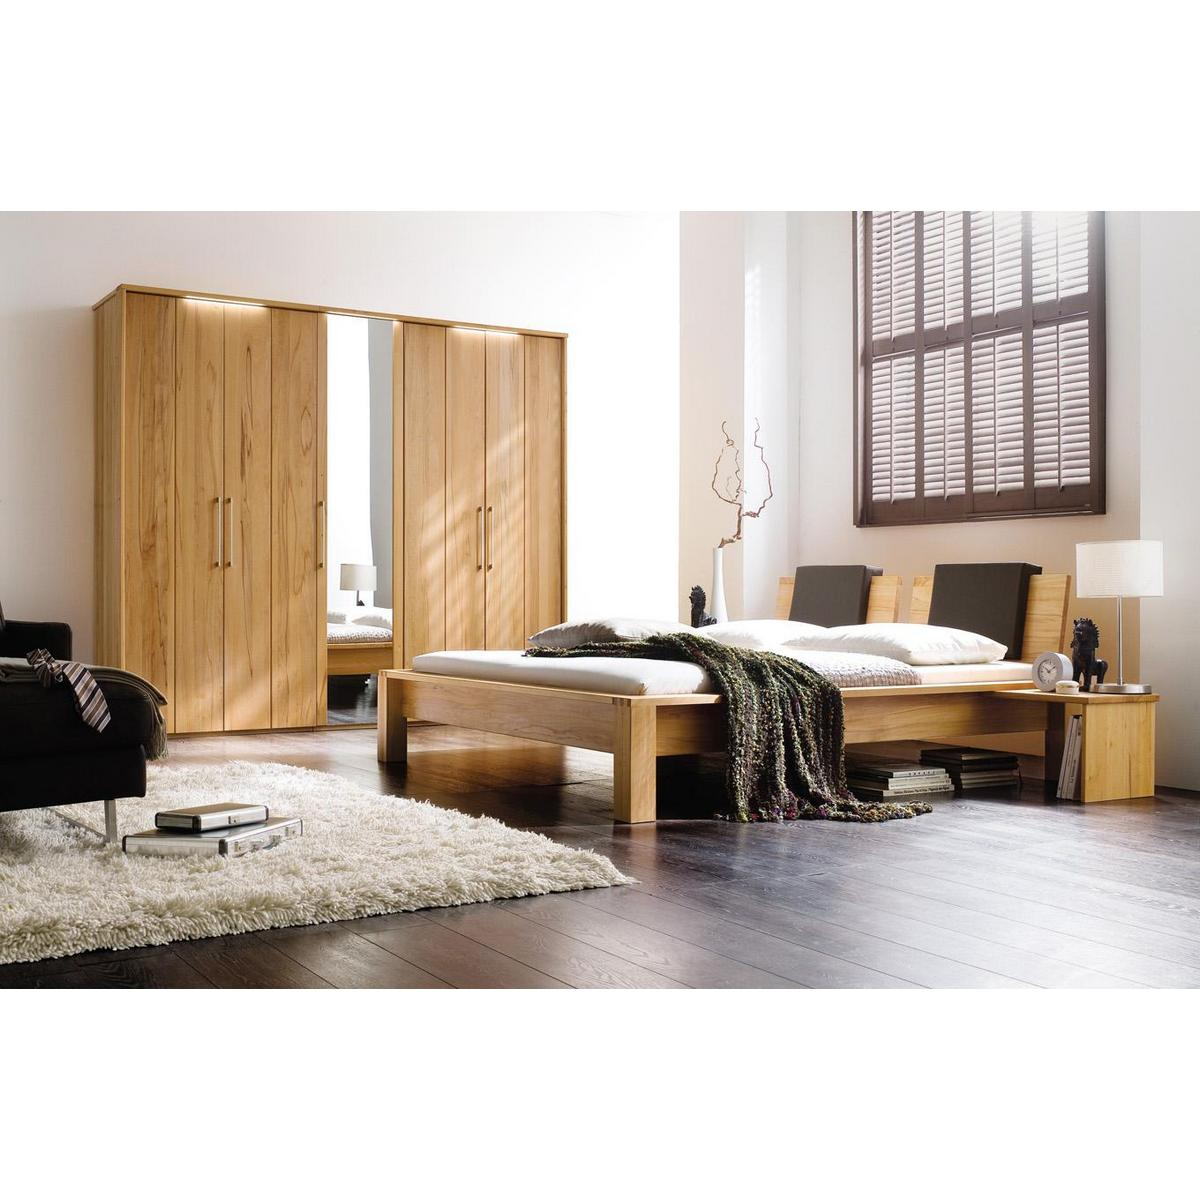 wohnzimmer schwarz weiss. Black Bedroom Furniture Sets. Home Design Ideas